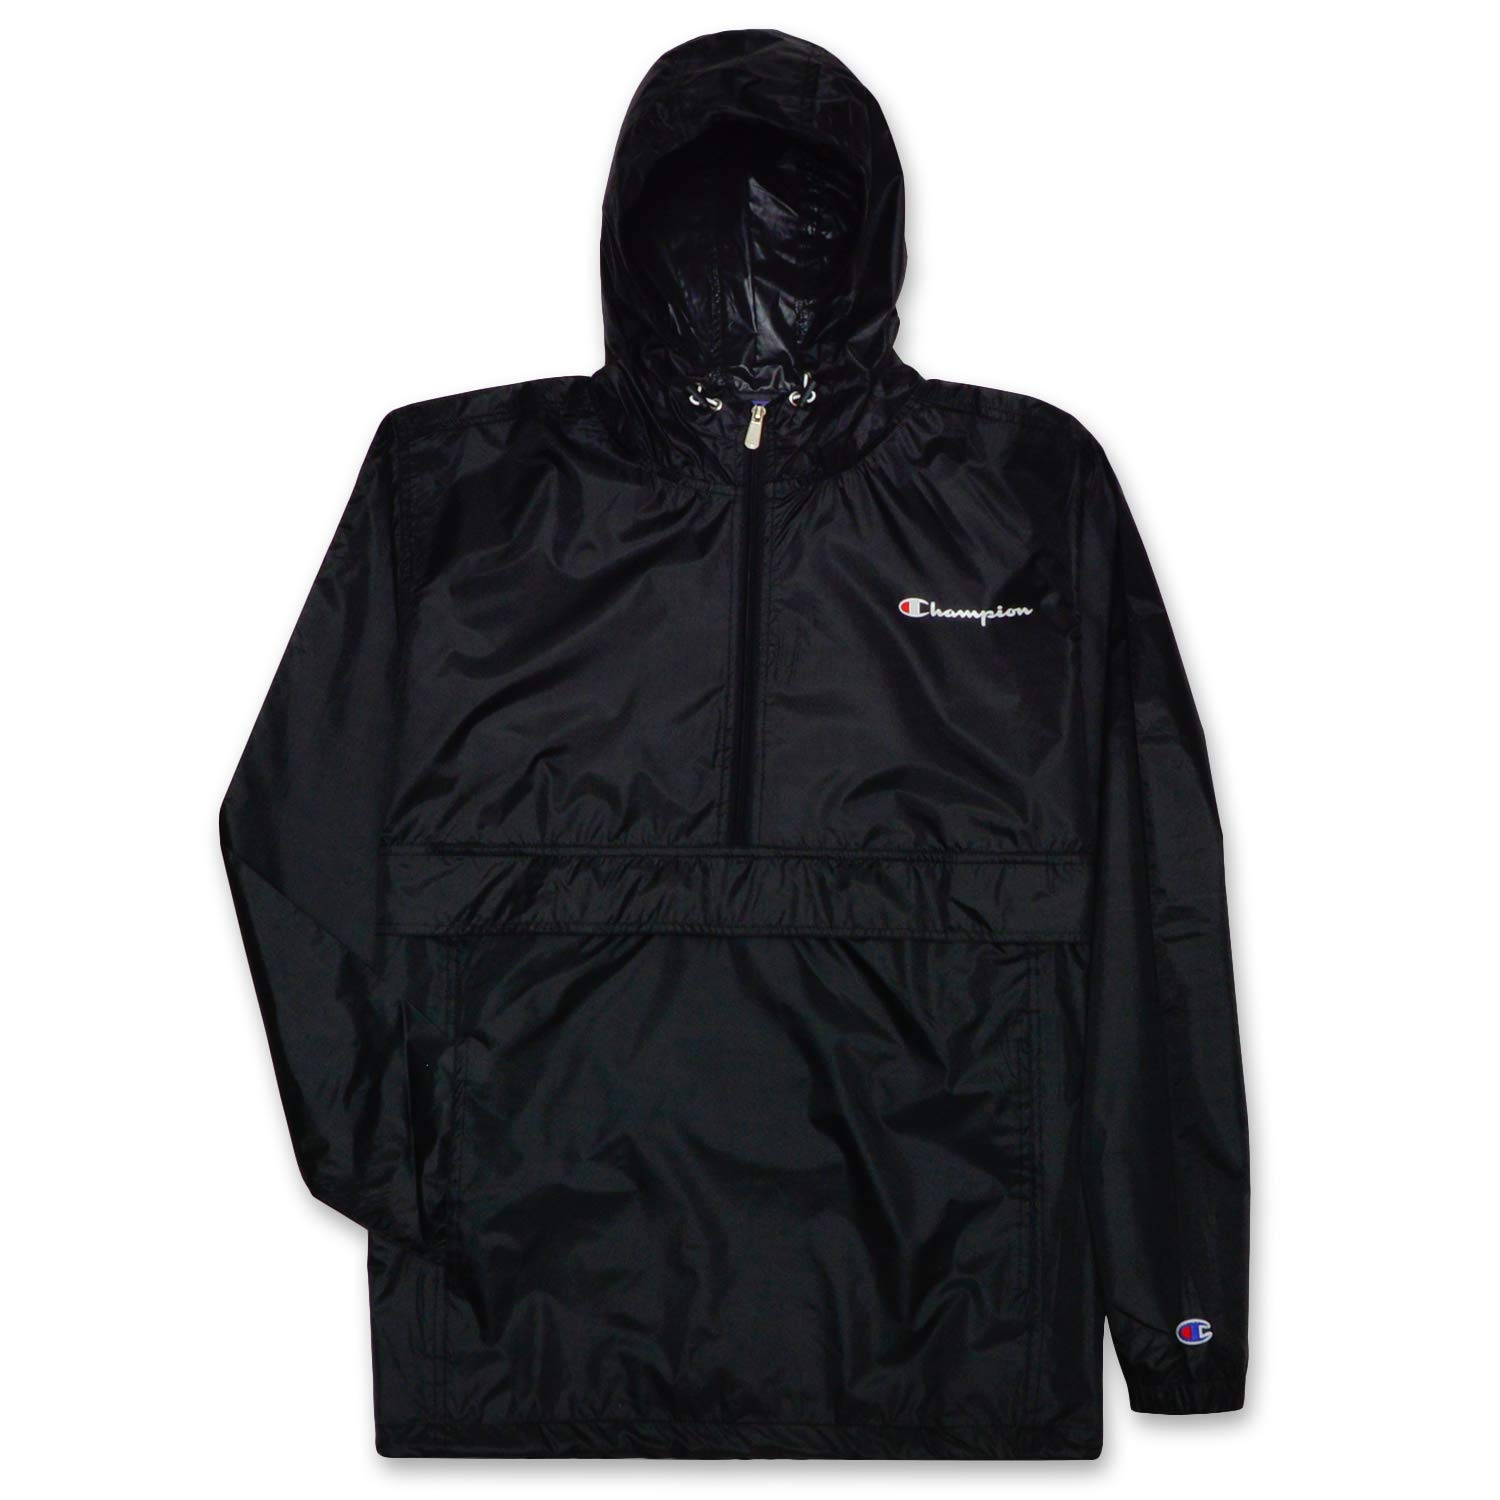 Champion Mens Big and Tall Packable Lightweight Anorak Jacket Black 4X by Champion